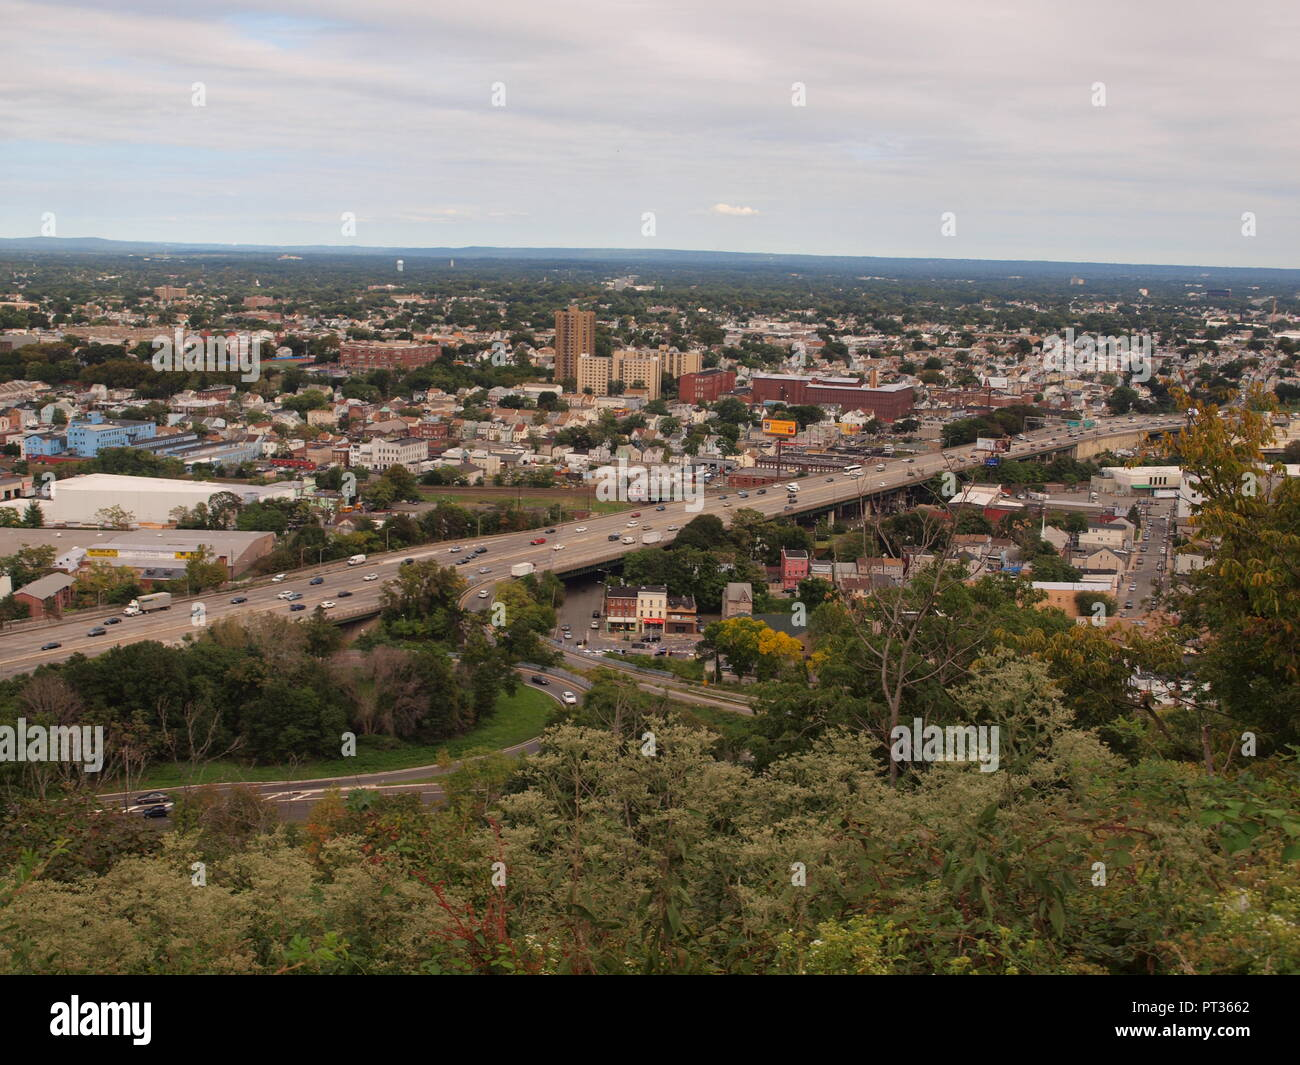 Paterson NJ from the Garrett Mountain reservation overlook in Passaic County, New Jersey. - Stock Image